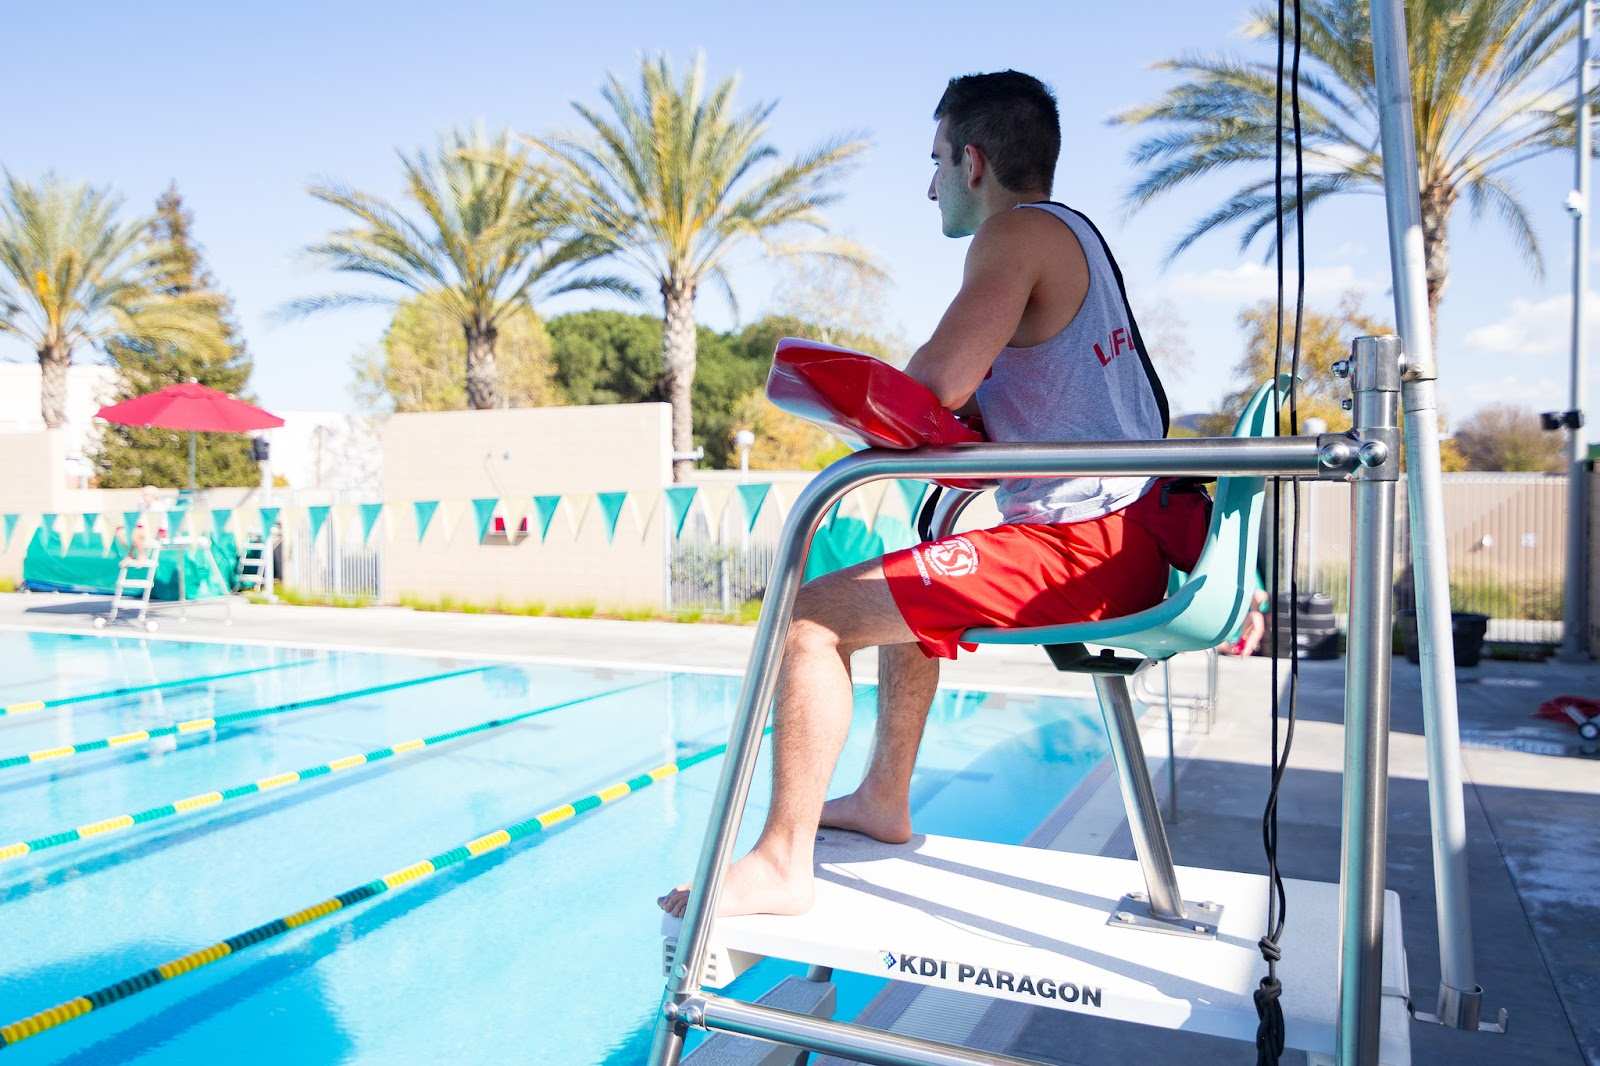 Campus Rec lifeguard on stand overlooking the BRIC pool